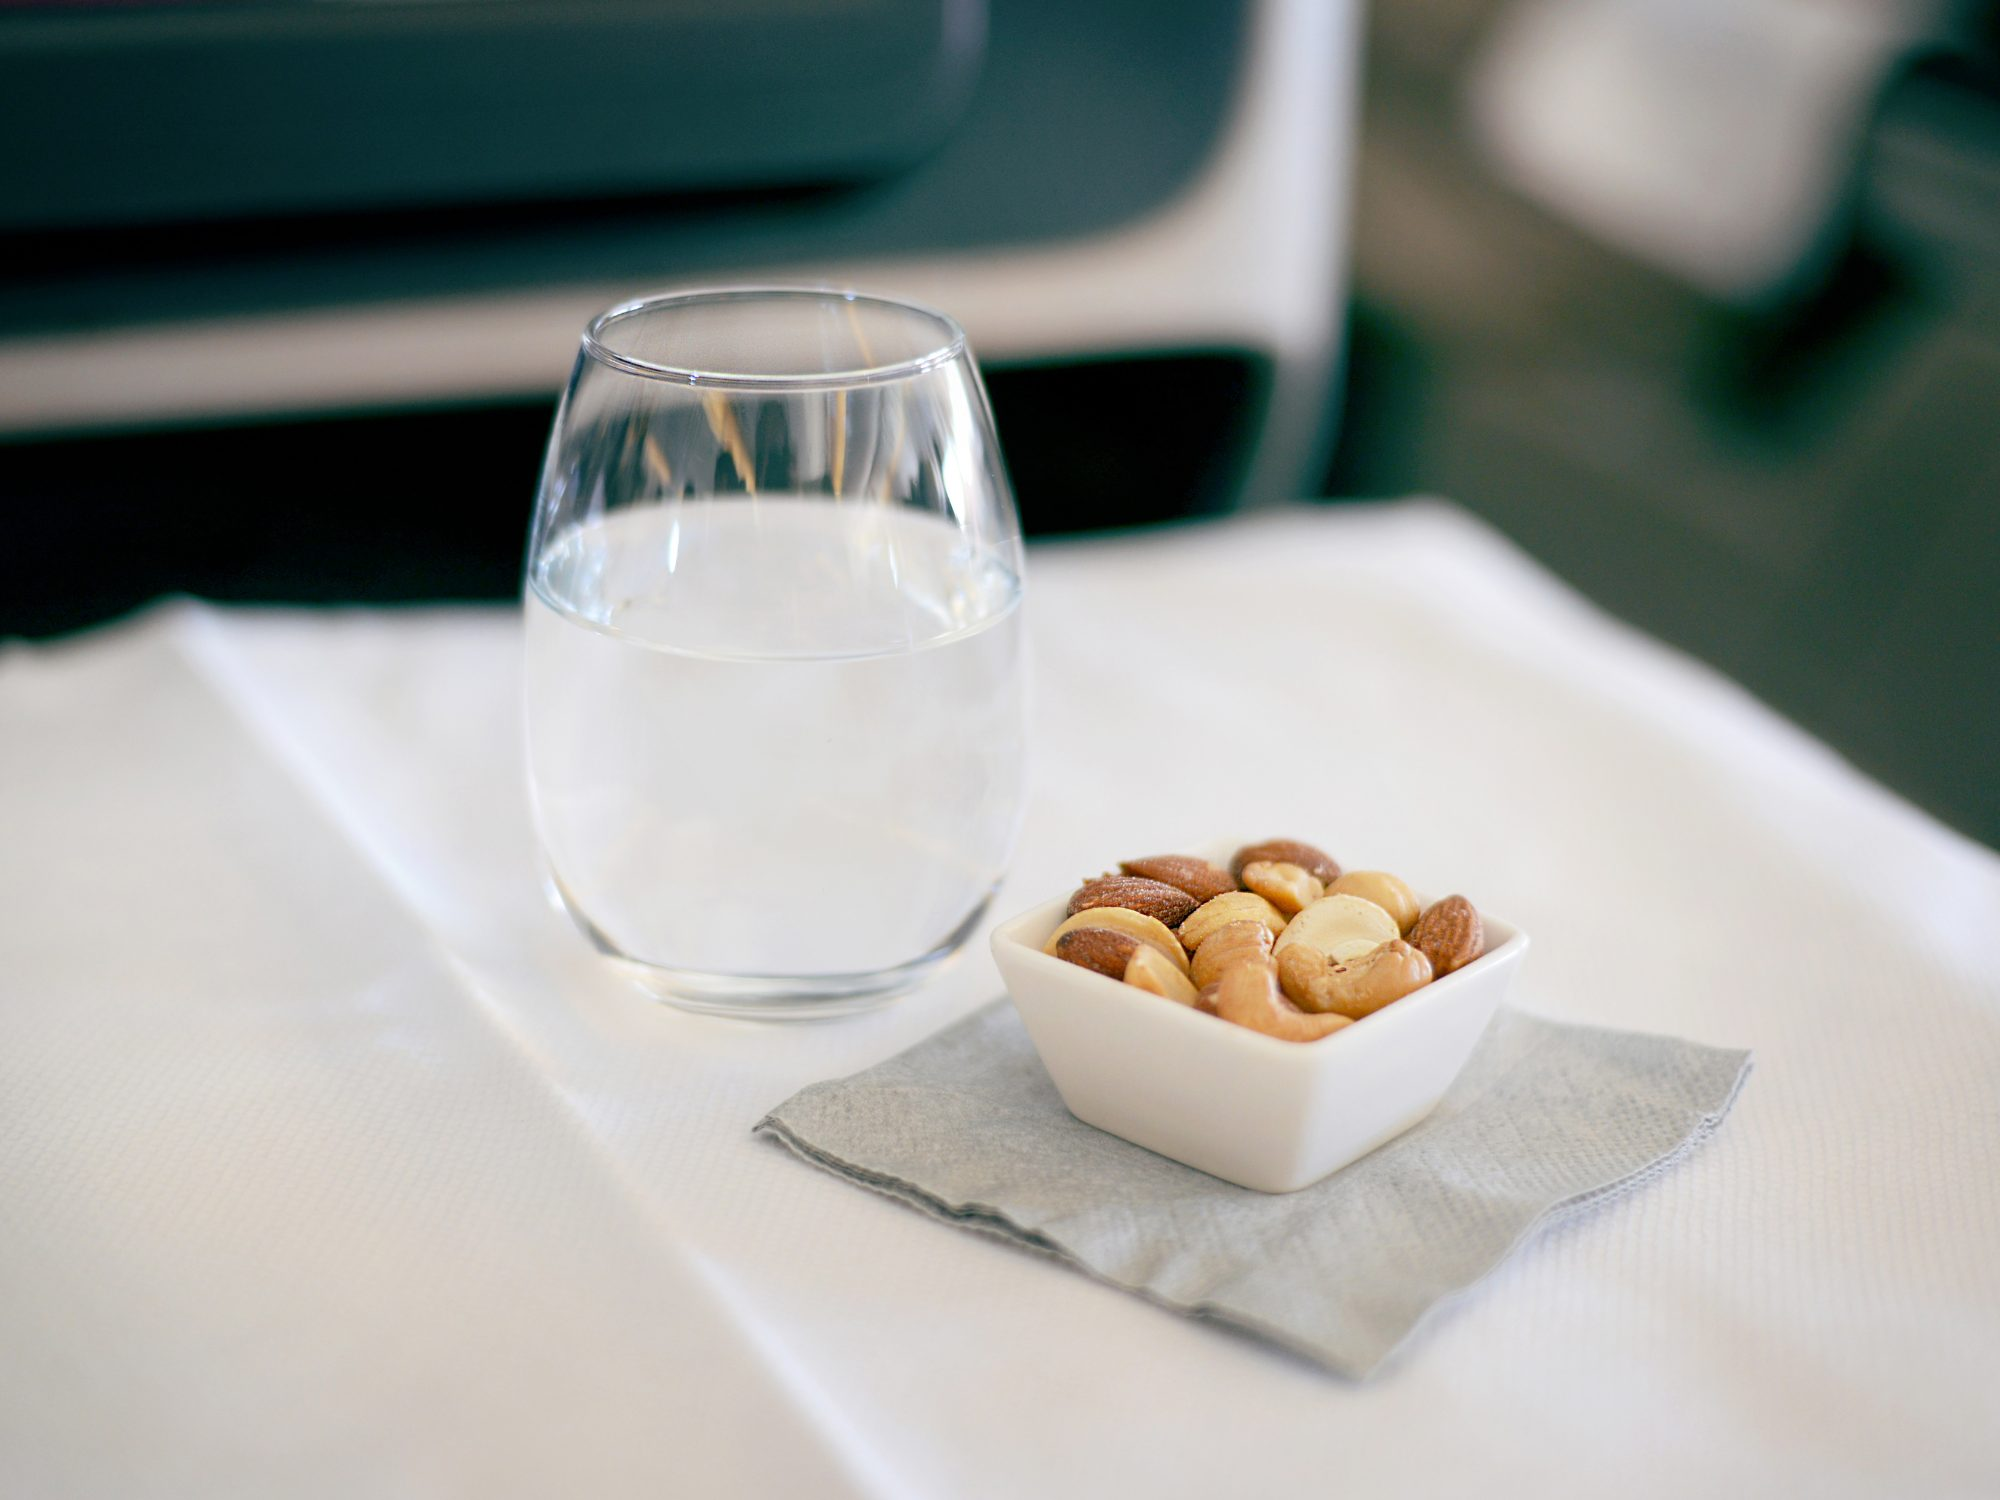 The Best Healthy Plane Snacks to Pack for a Long Flight